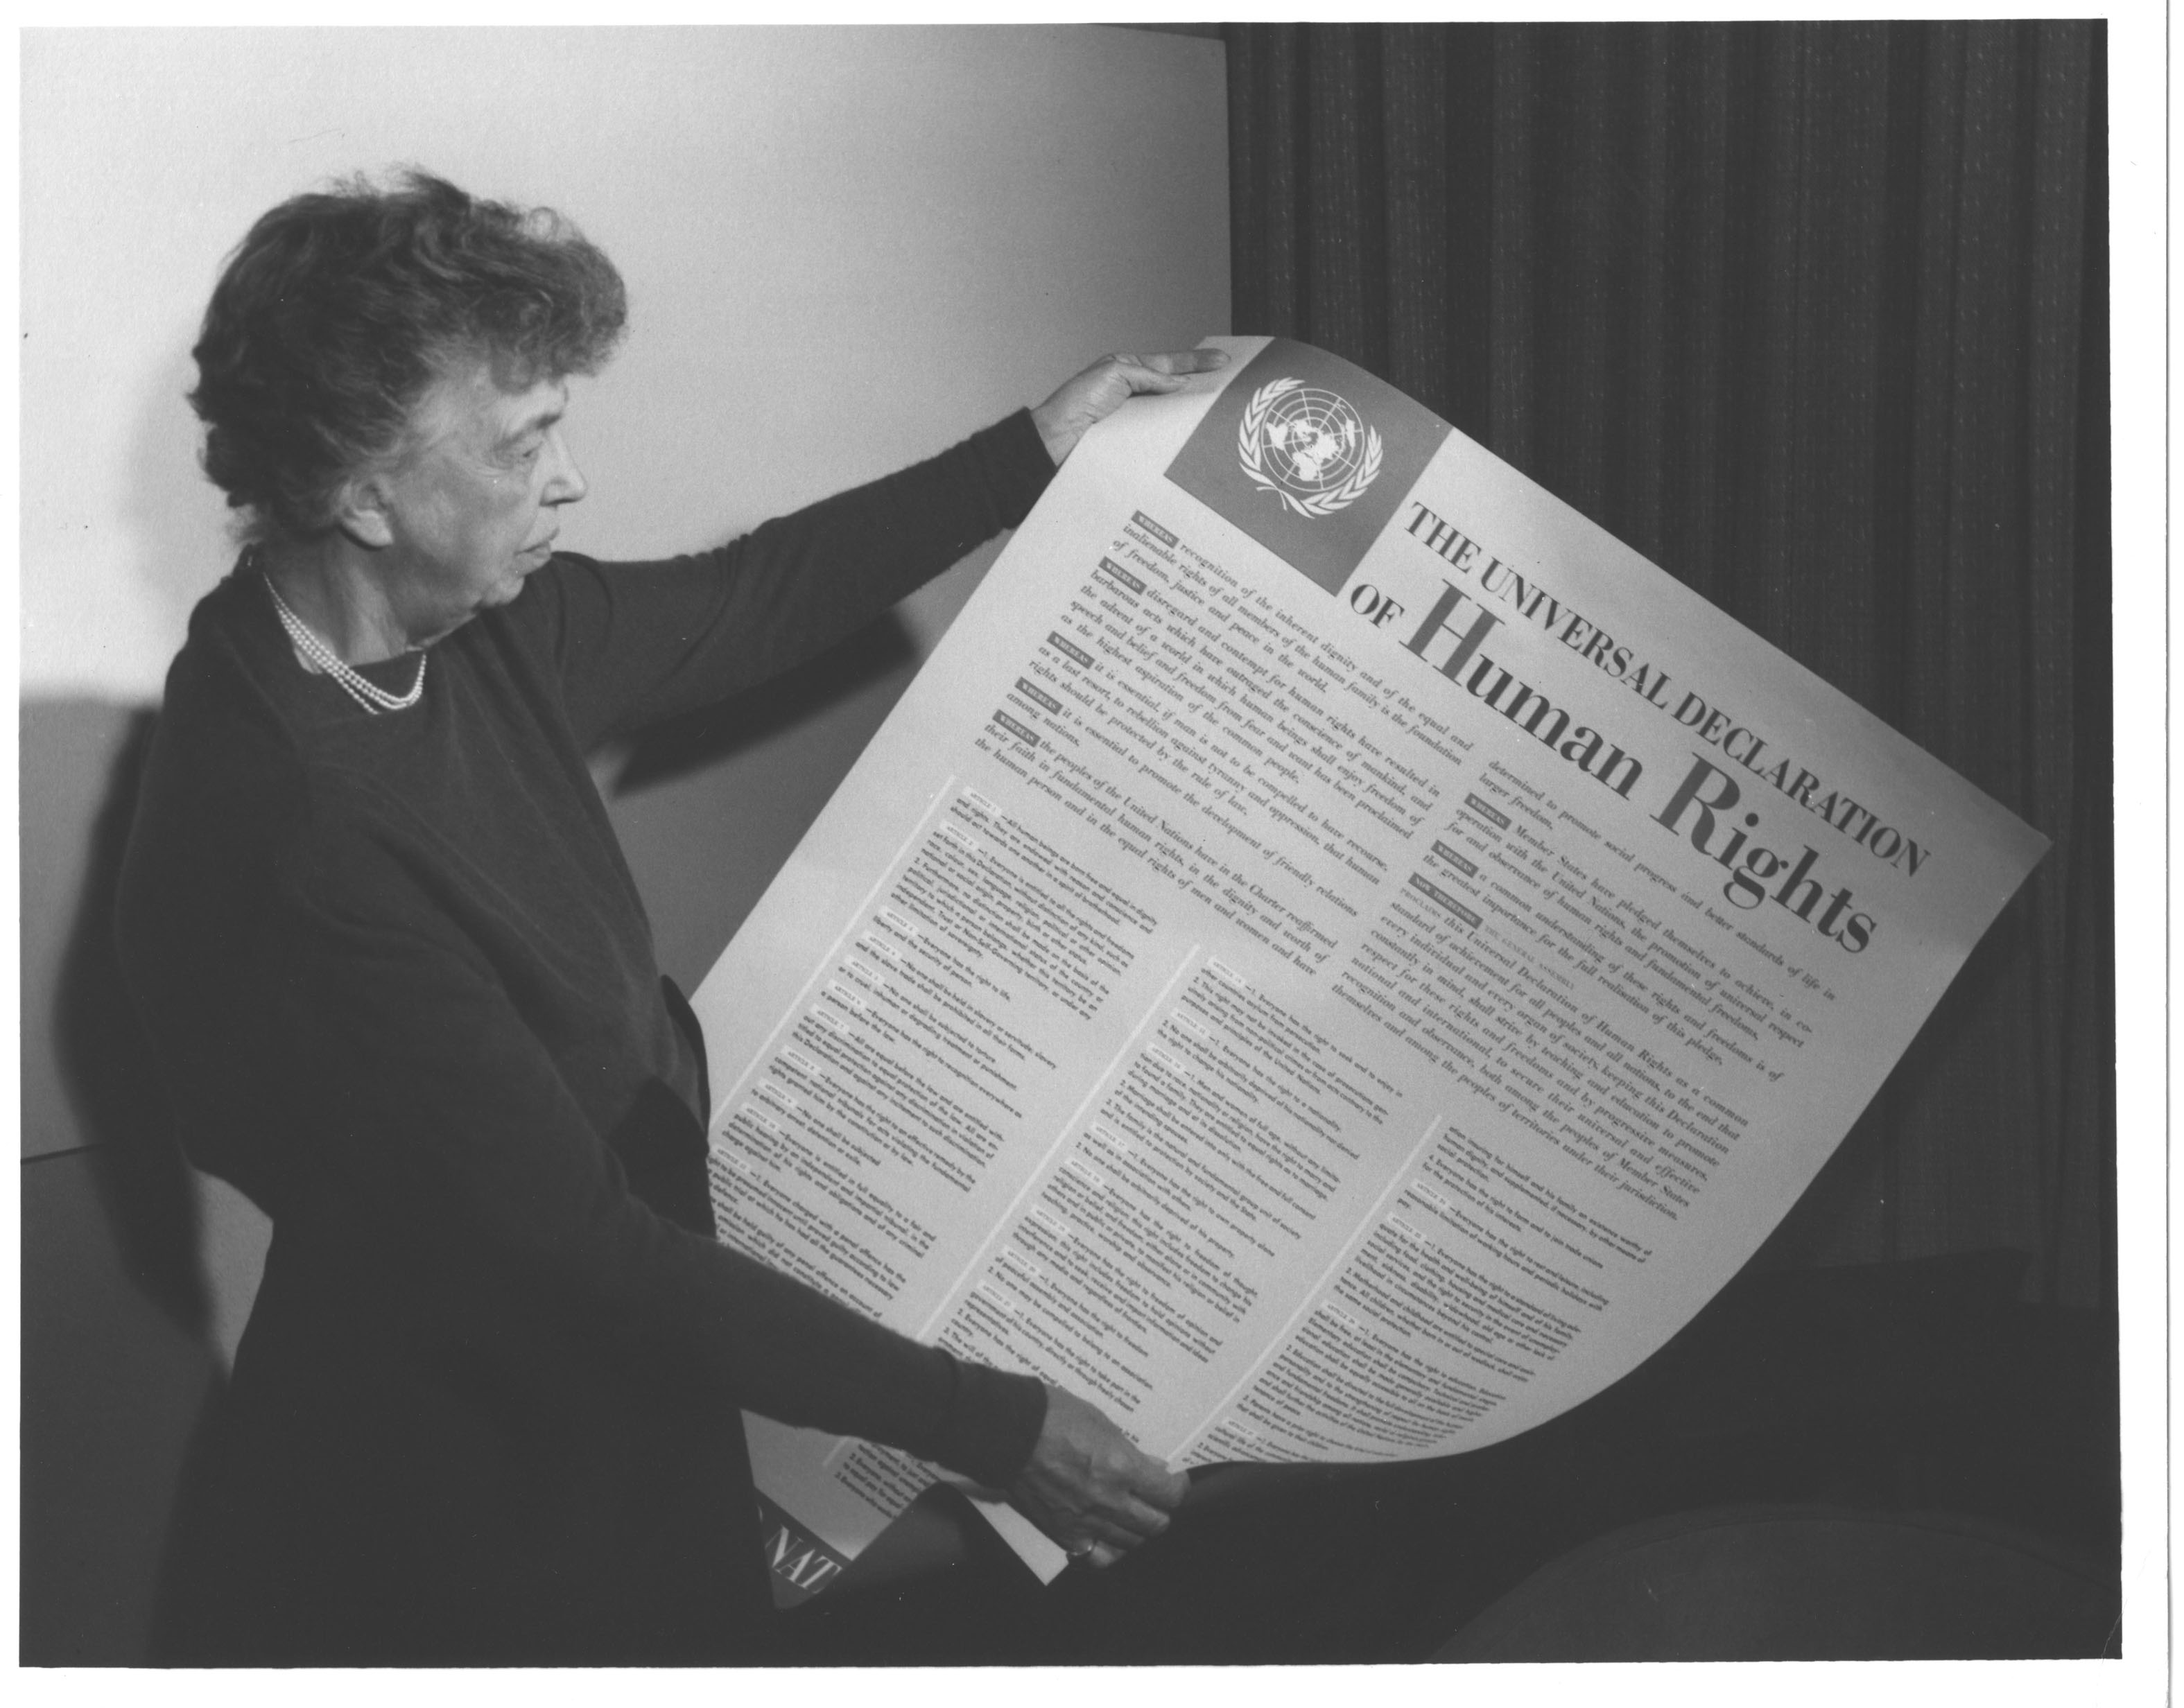 united nations universal declaration of human rights Guided by the purposes and principles of the charter of the united nations the universal declaration of human rights and international human rights law.